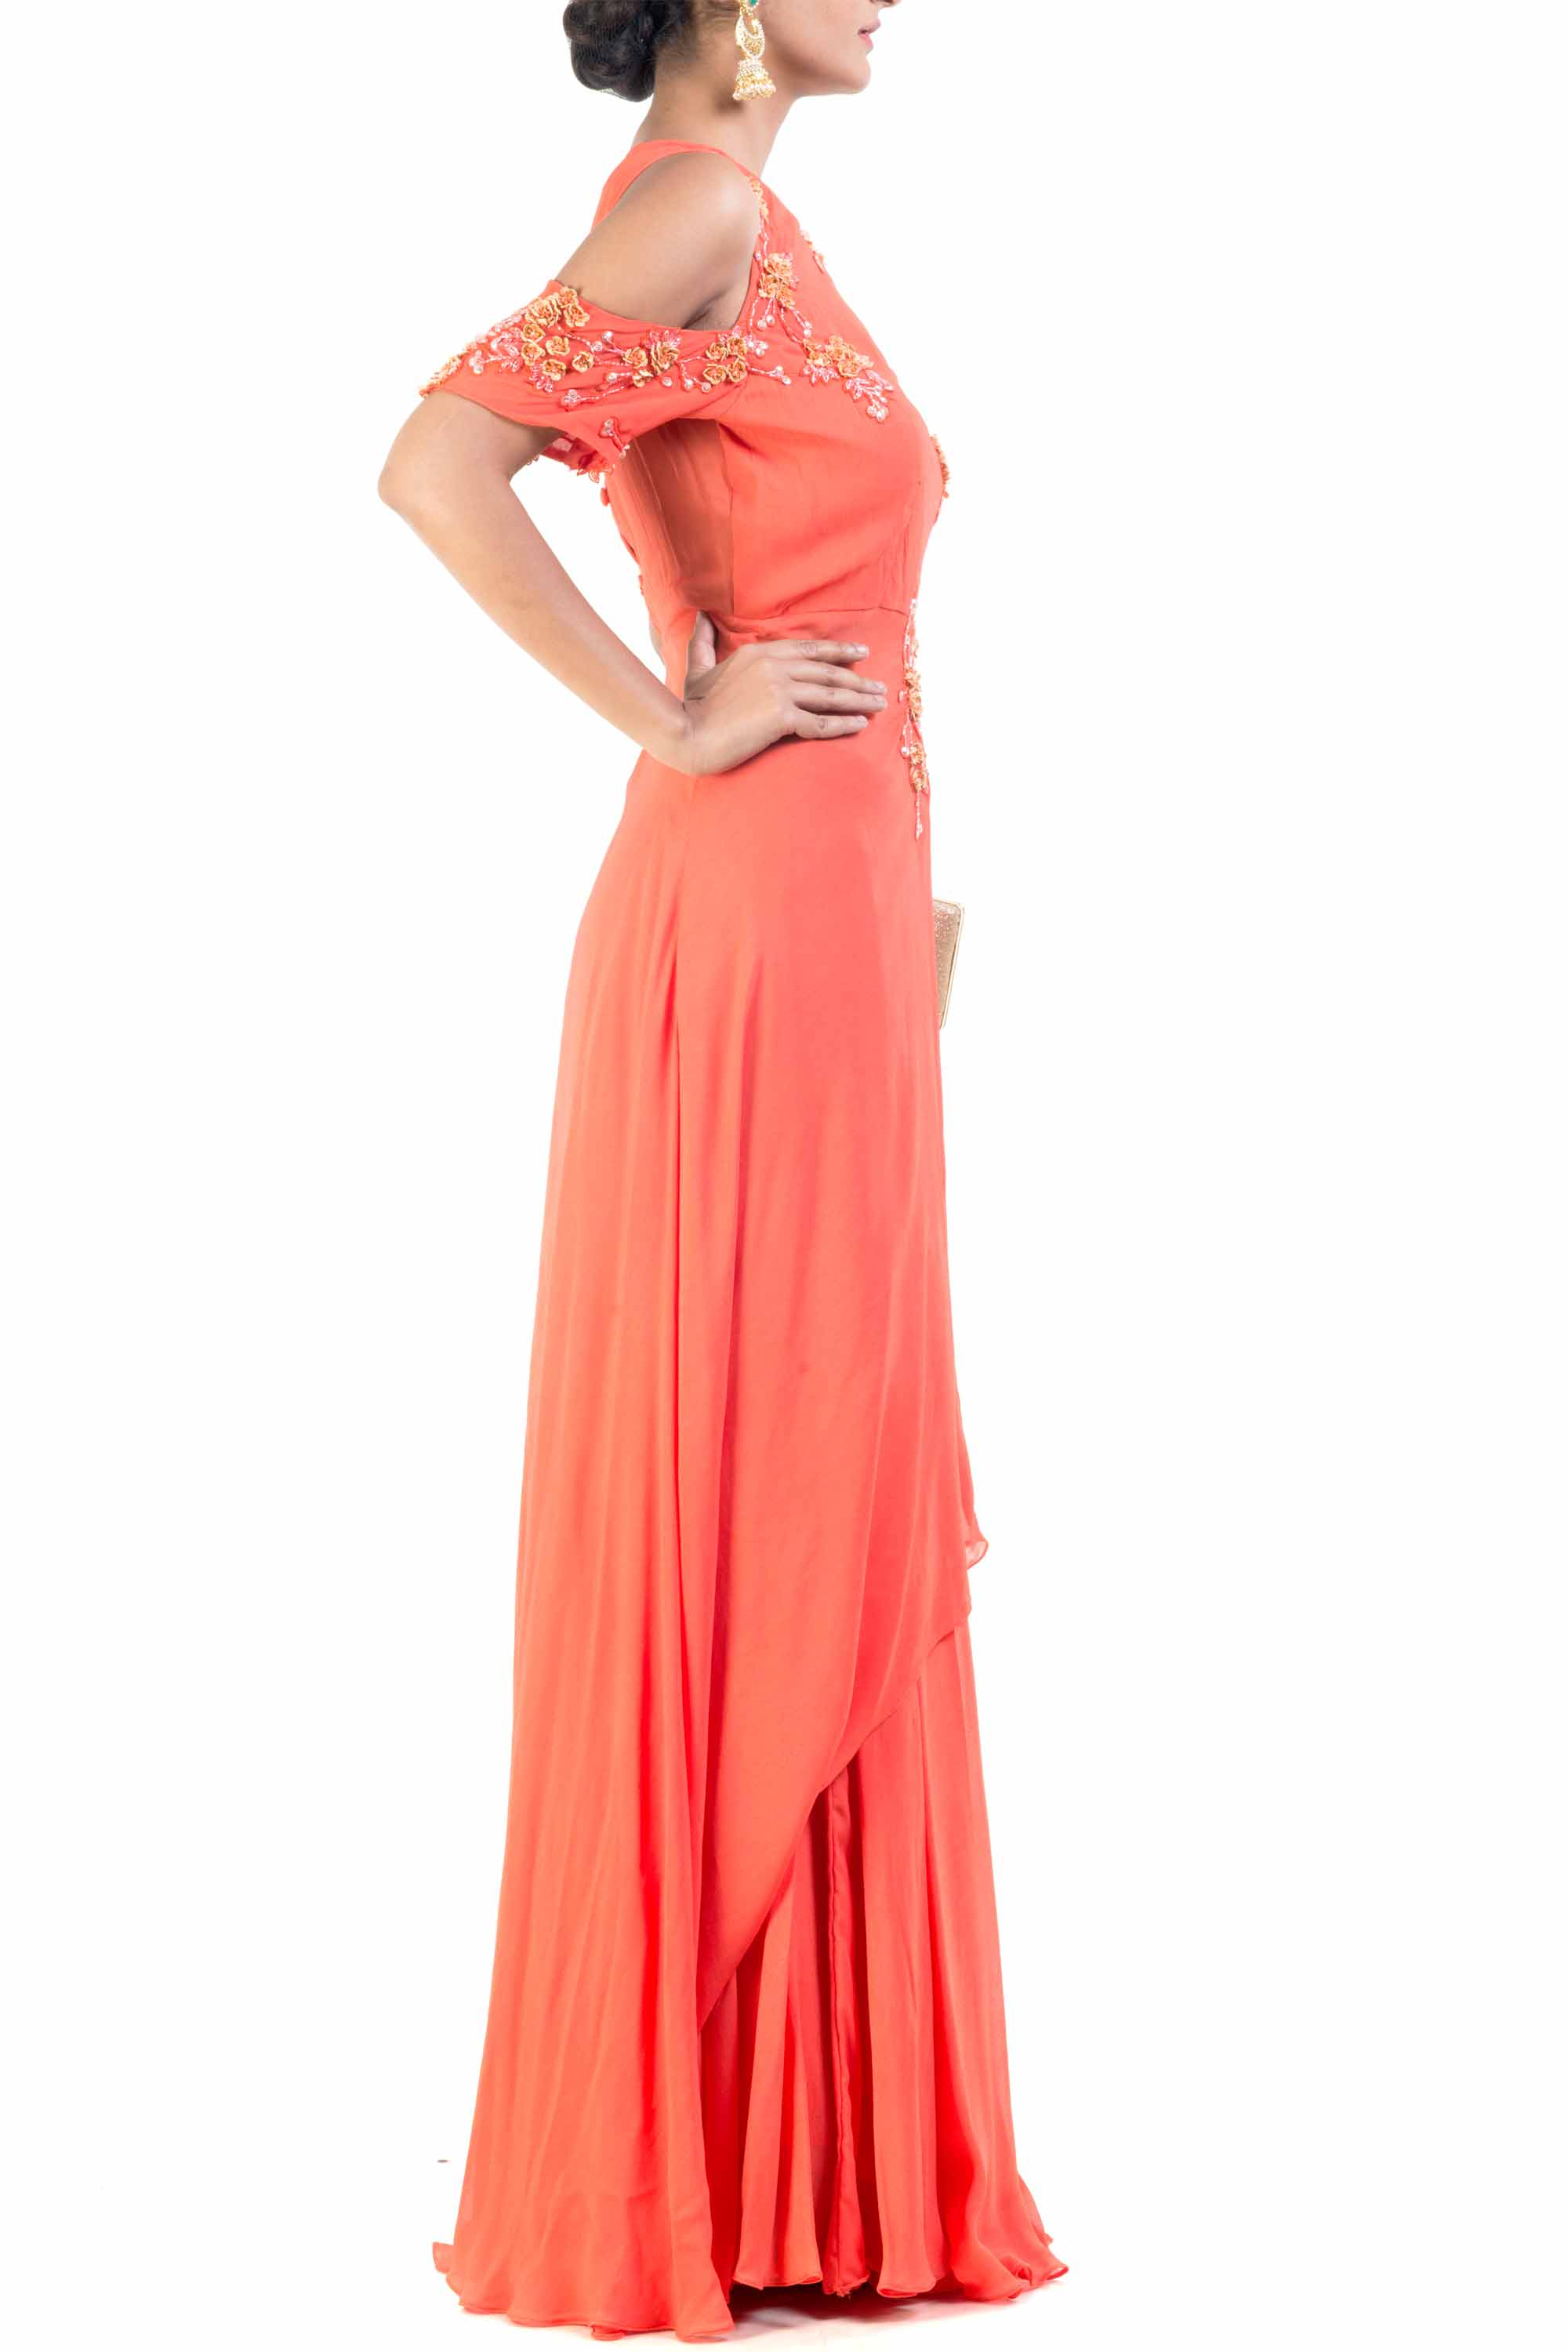 Cold Shoulder Bright Orange Palazzo Sahara Set Side